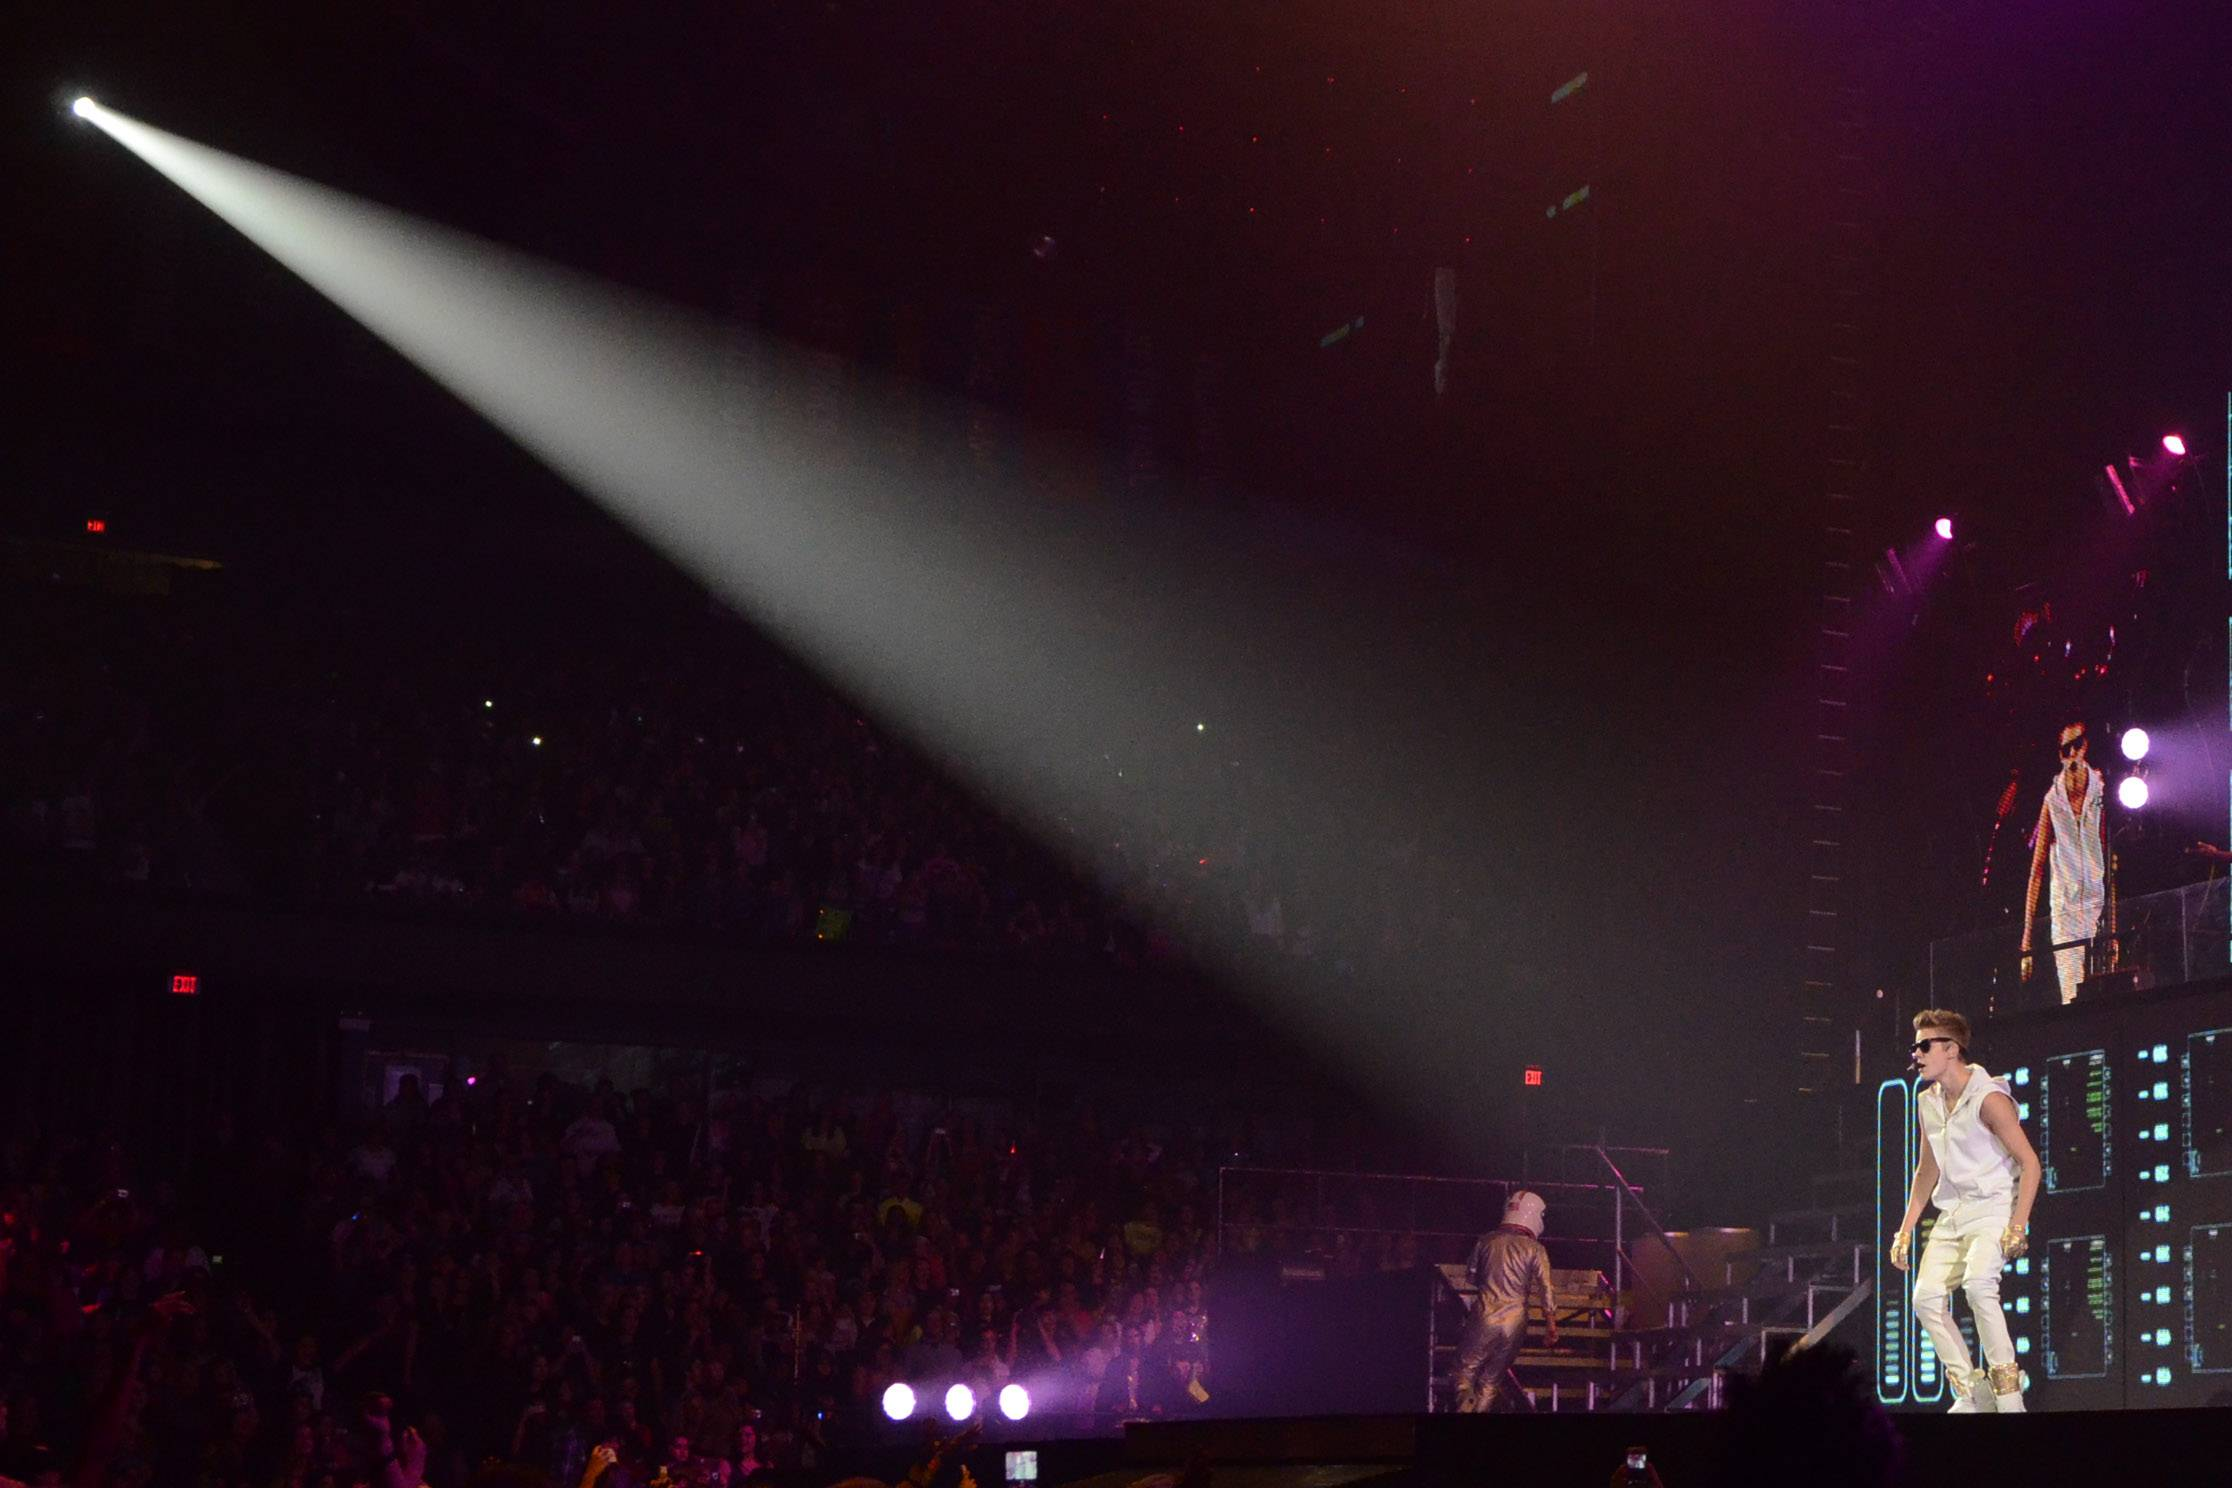 Justin Bieber performs at the Allstate Arena Tuesday night in Rosemont.